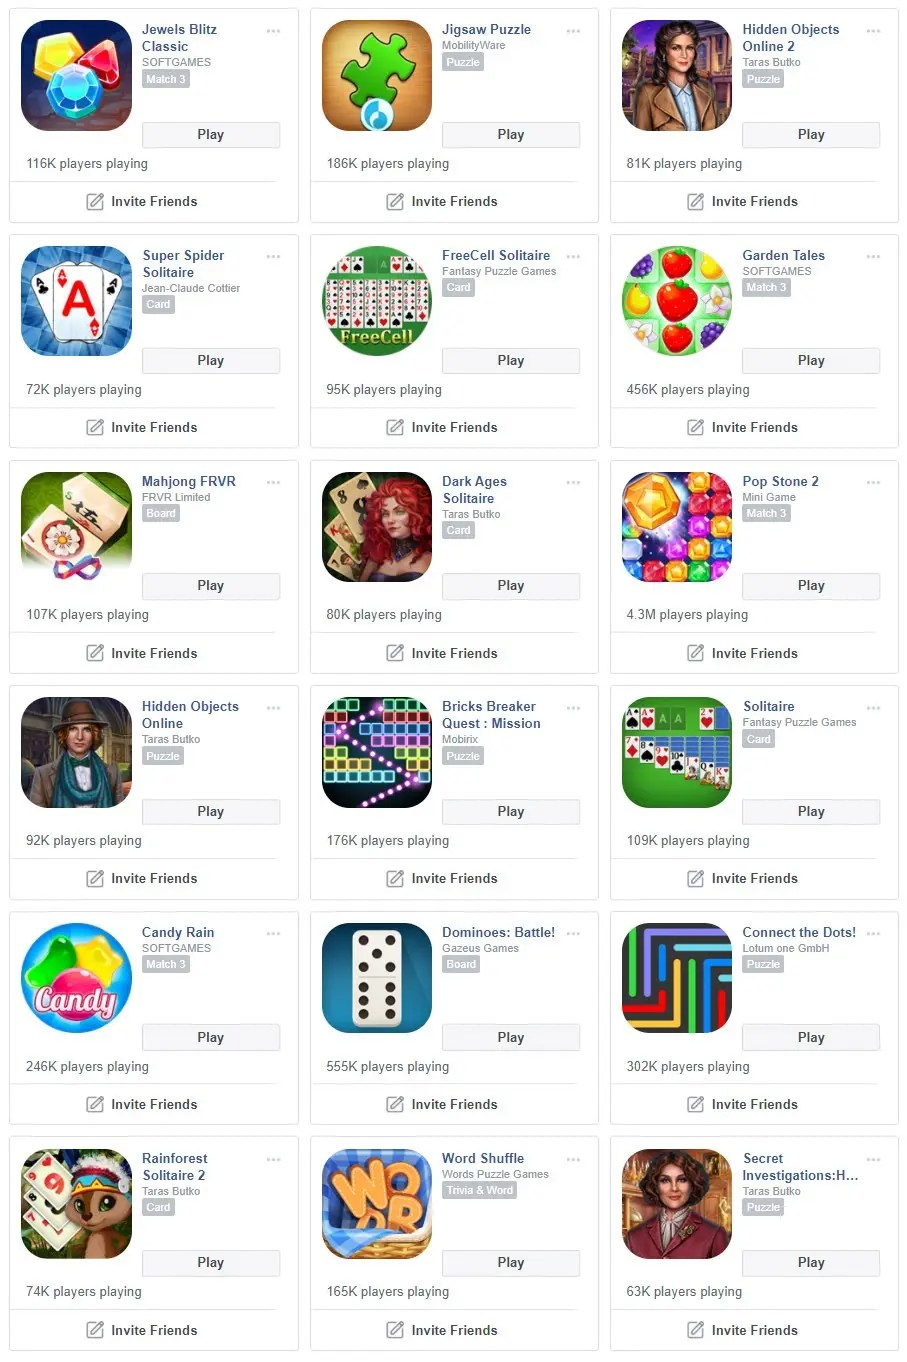 List of Instant Games on Facebook Gaming